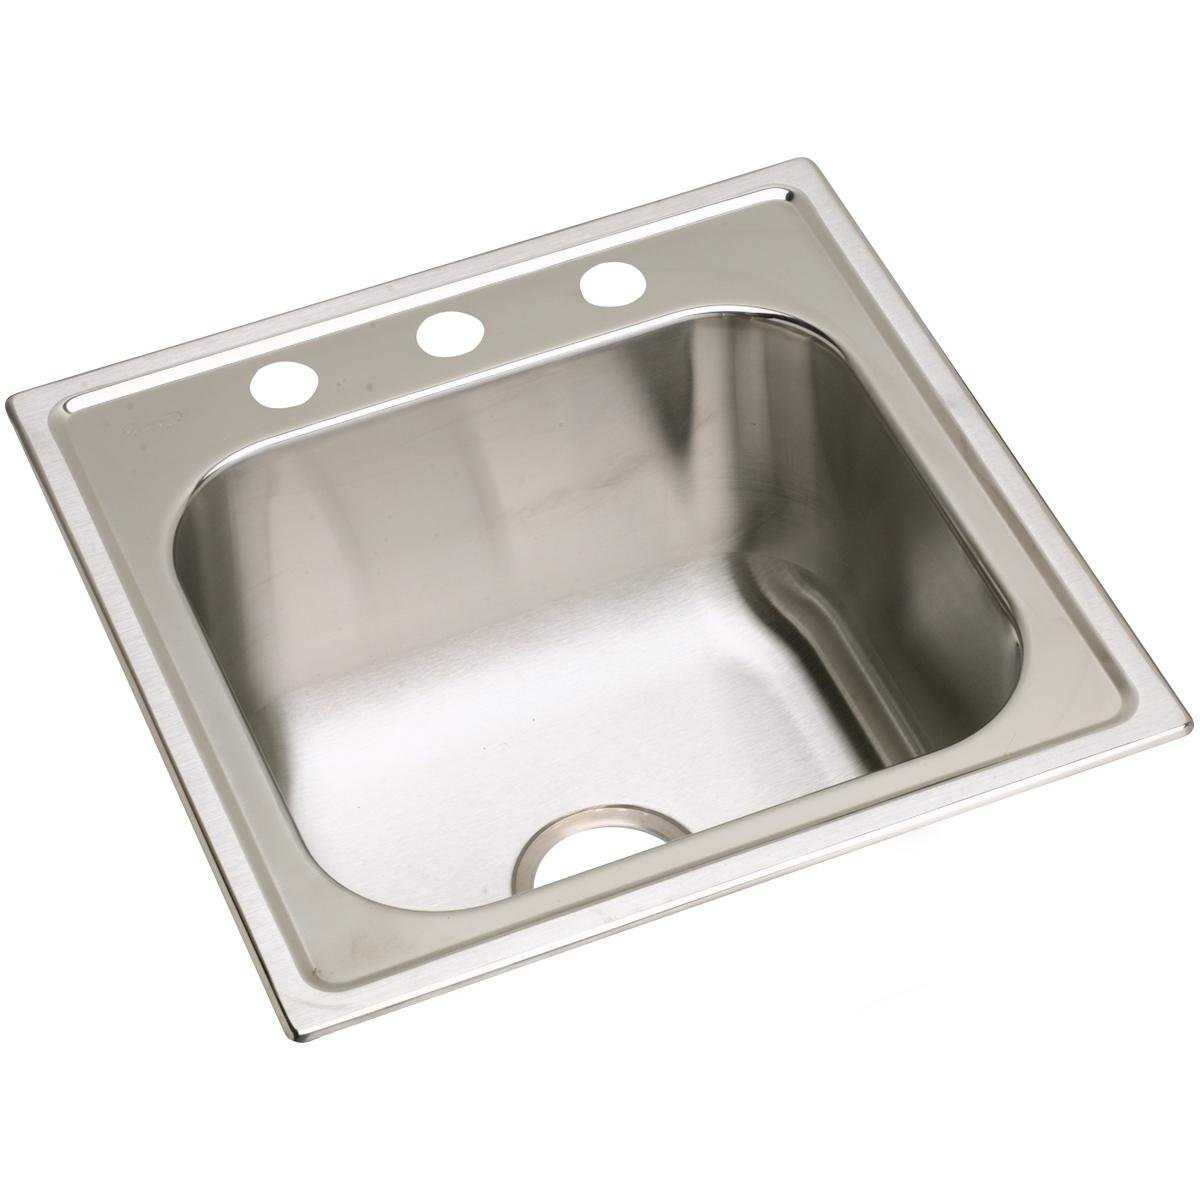 Dayton DPC12020101 Single Bowl Top Mount Stainless Steel Laundry Sink